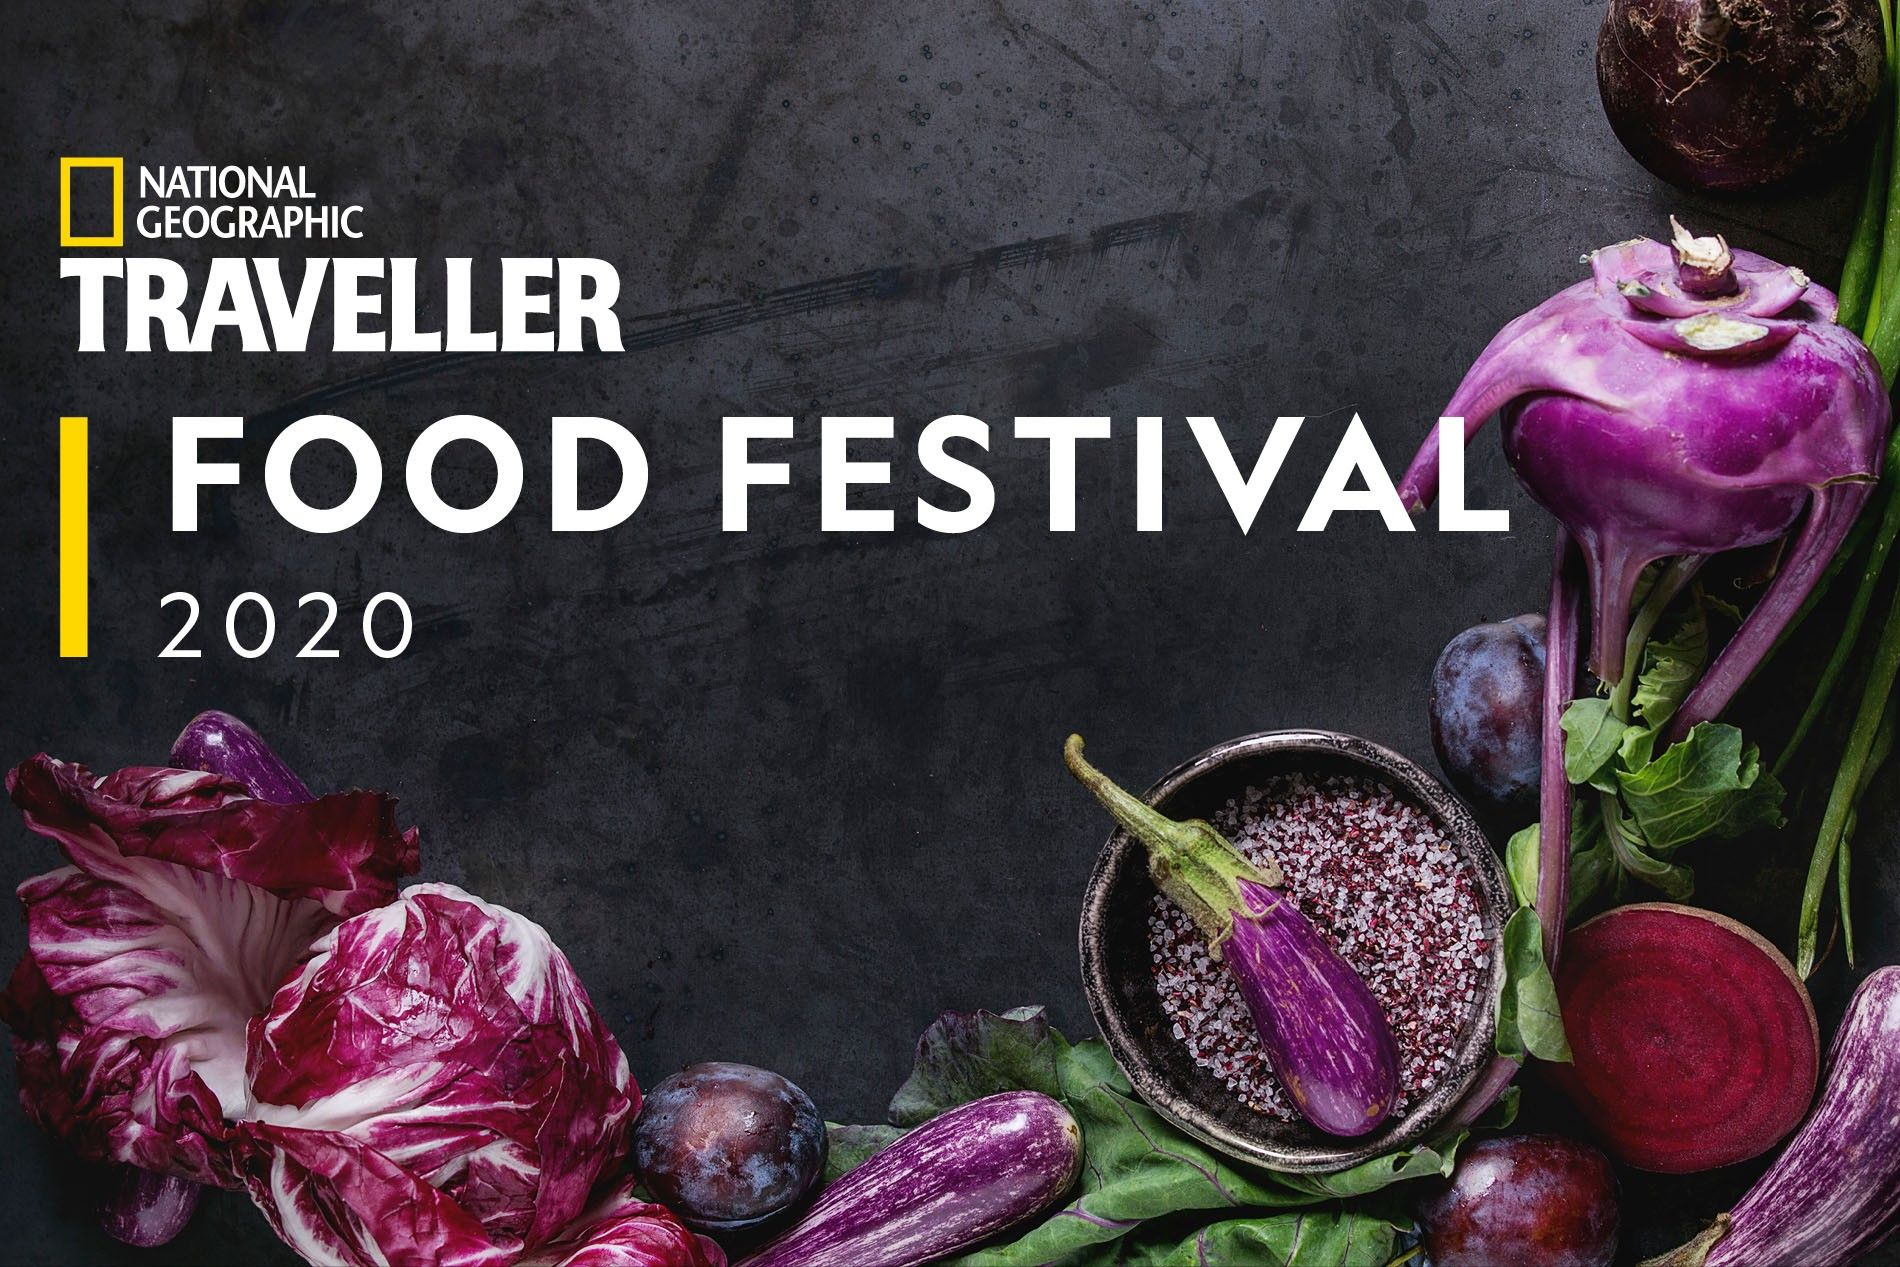 The National Geographic Traveller Food Festival 2020